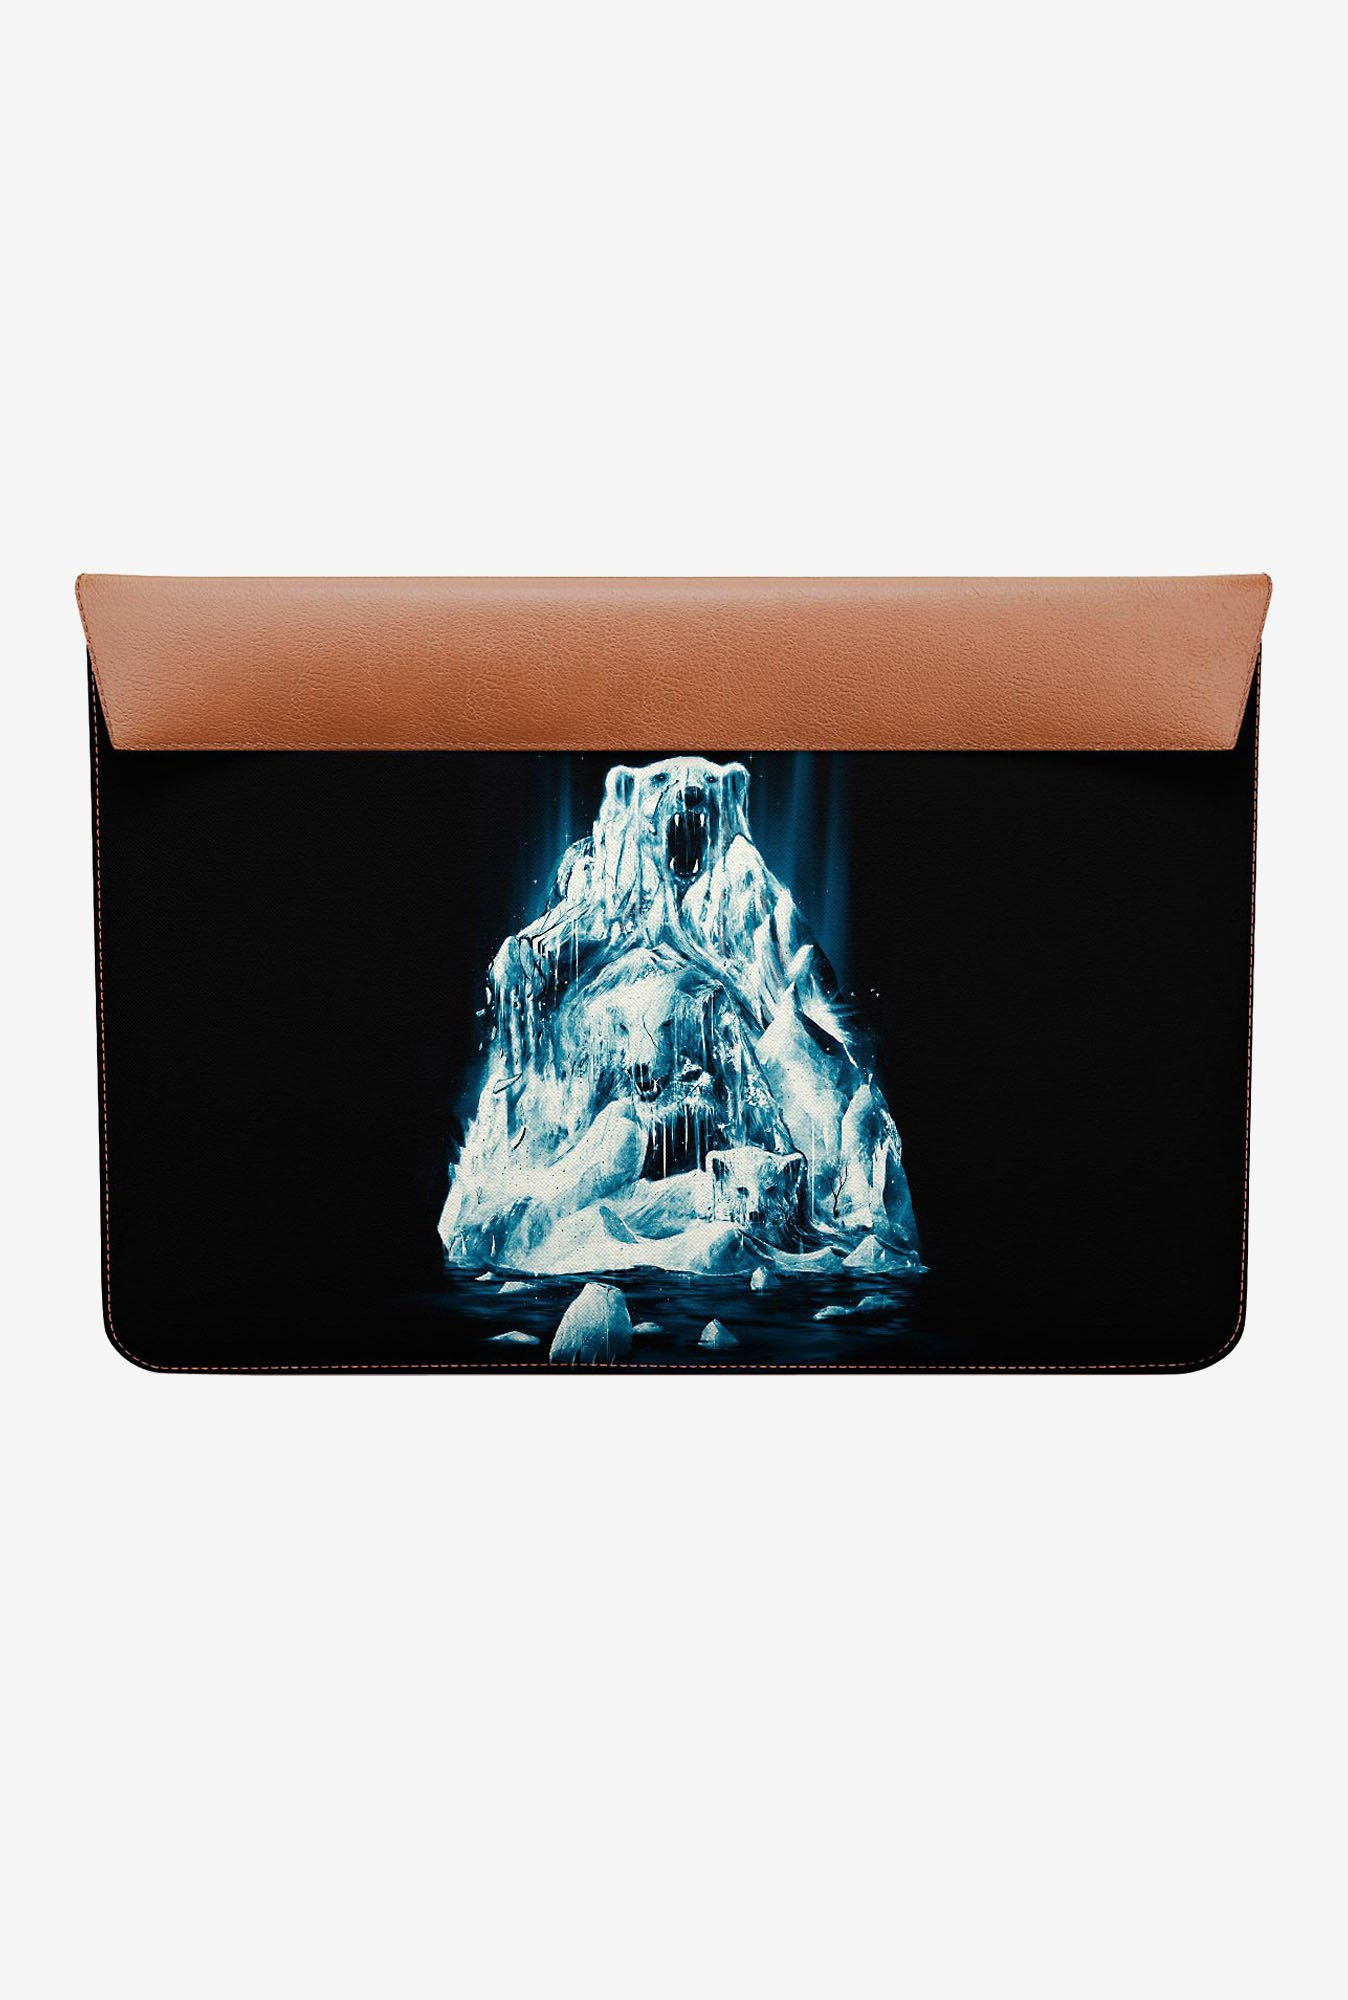 DailyObjects Polar Icebears MacBook Air 11 Envelope Sleeve